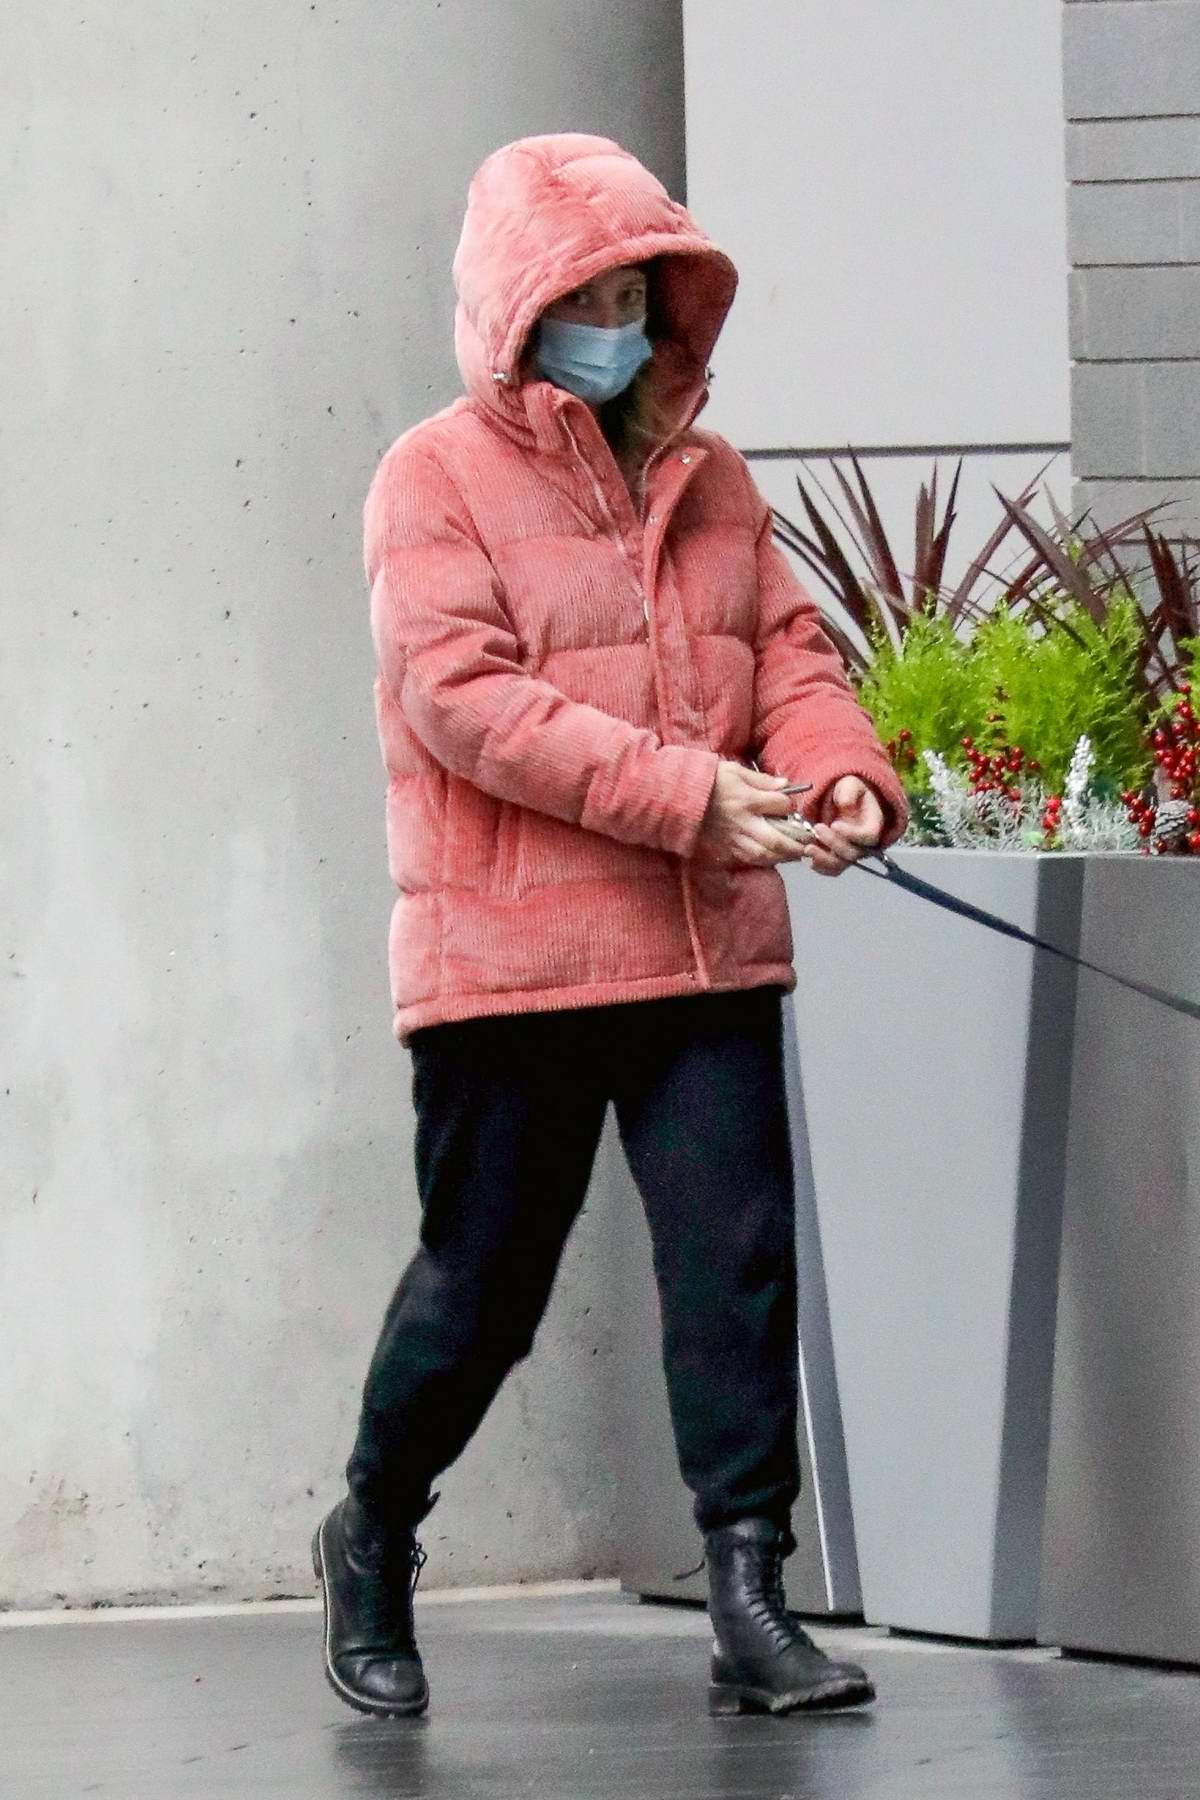 Lili Reinhart dresses in a hooded puffer jacket while for a walk with her dog Milo in Vancouver, Canada